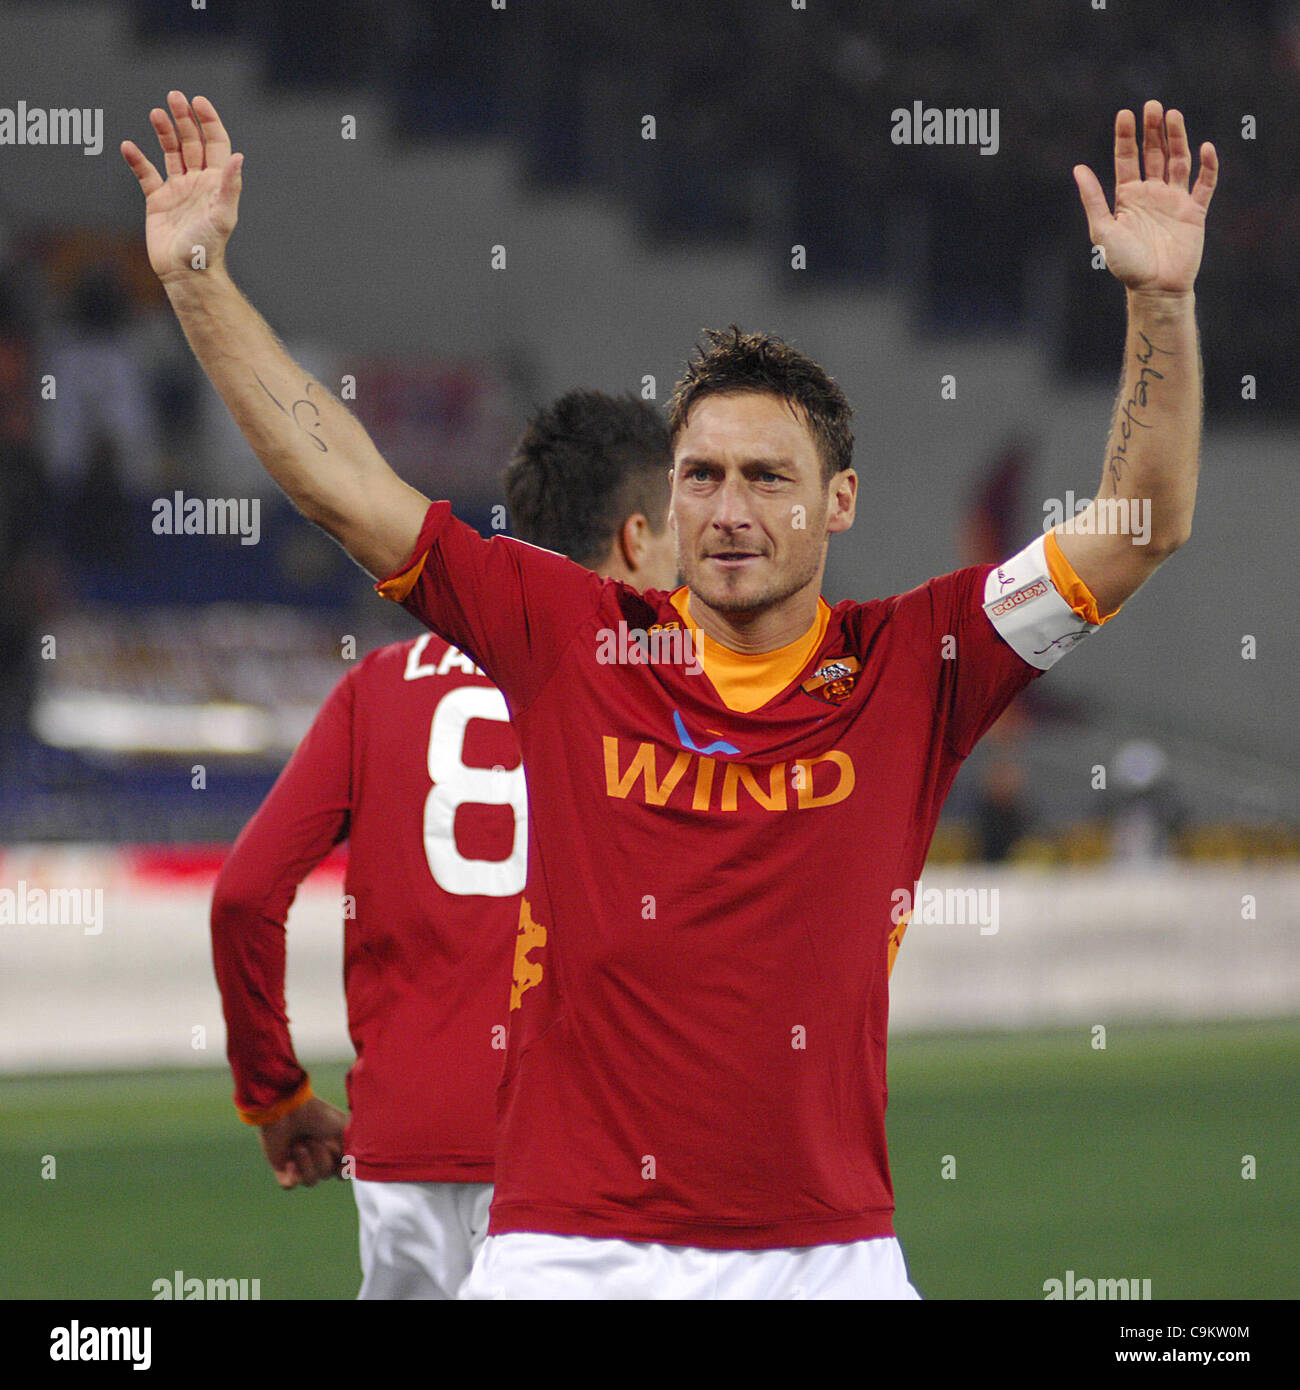 21.01.2012, Rome, Italy.   In action during the Serie A match between AS Roma vs Cesena, played in the Stadio Olimpico. - Stock Image